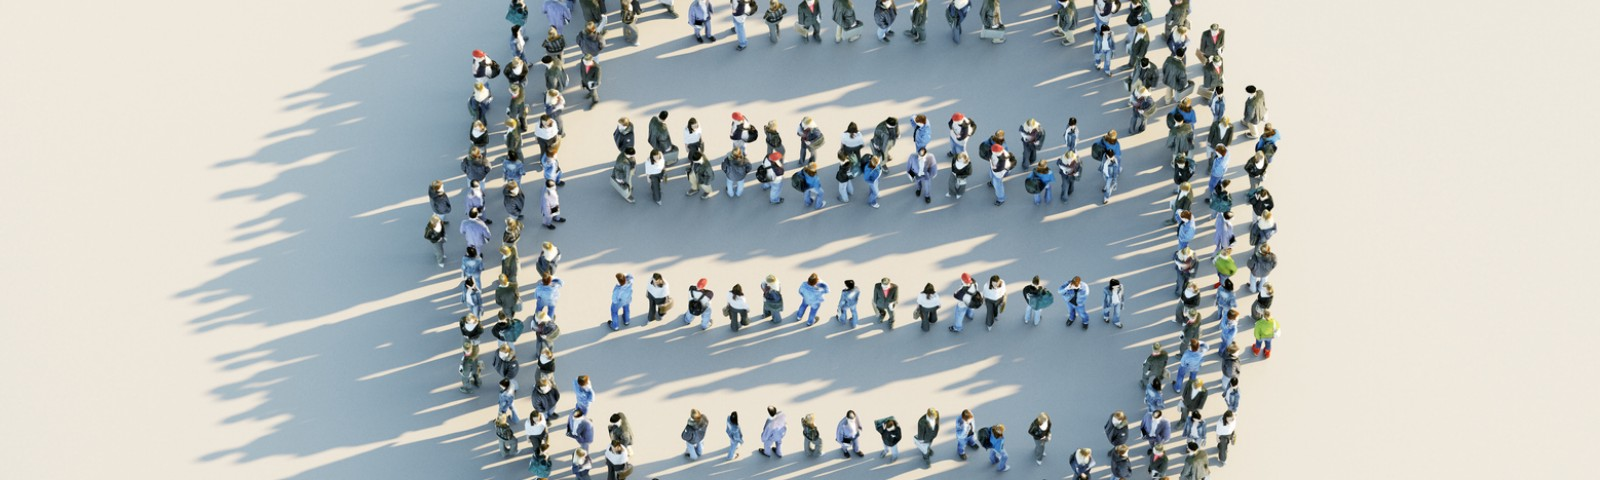 A crowd forms the shape of a DNA model.